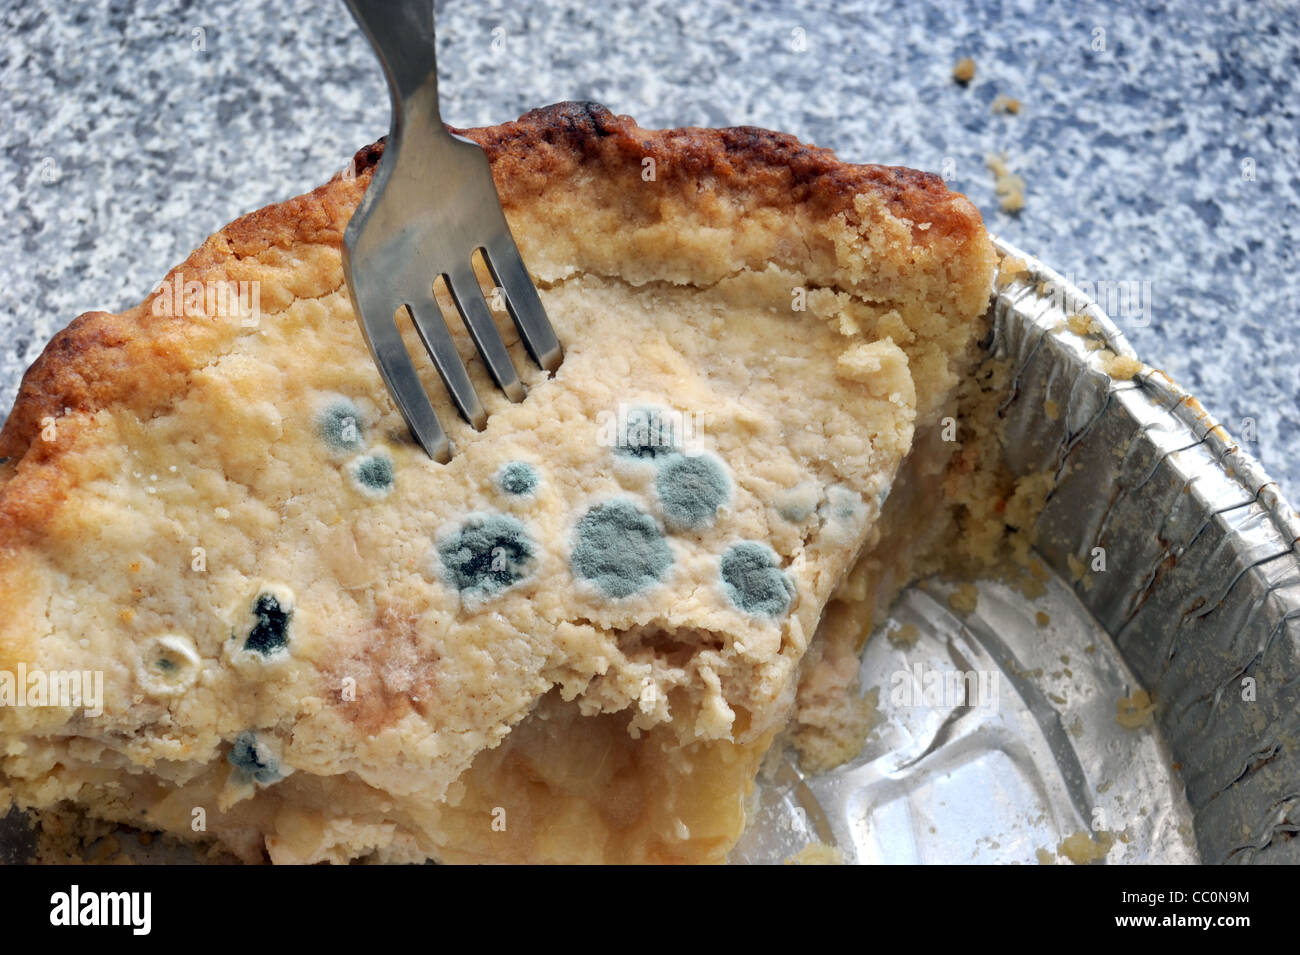 APPLE PIE WITH AREAS OF MOULD BACTERIA GROWING ON ITS CRUST RE BAKING FOOD HYGIENE DISEASE FOOD PRESERATIVES SELL - Stock Image